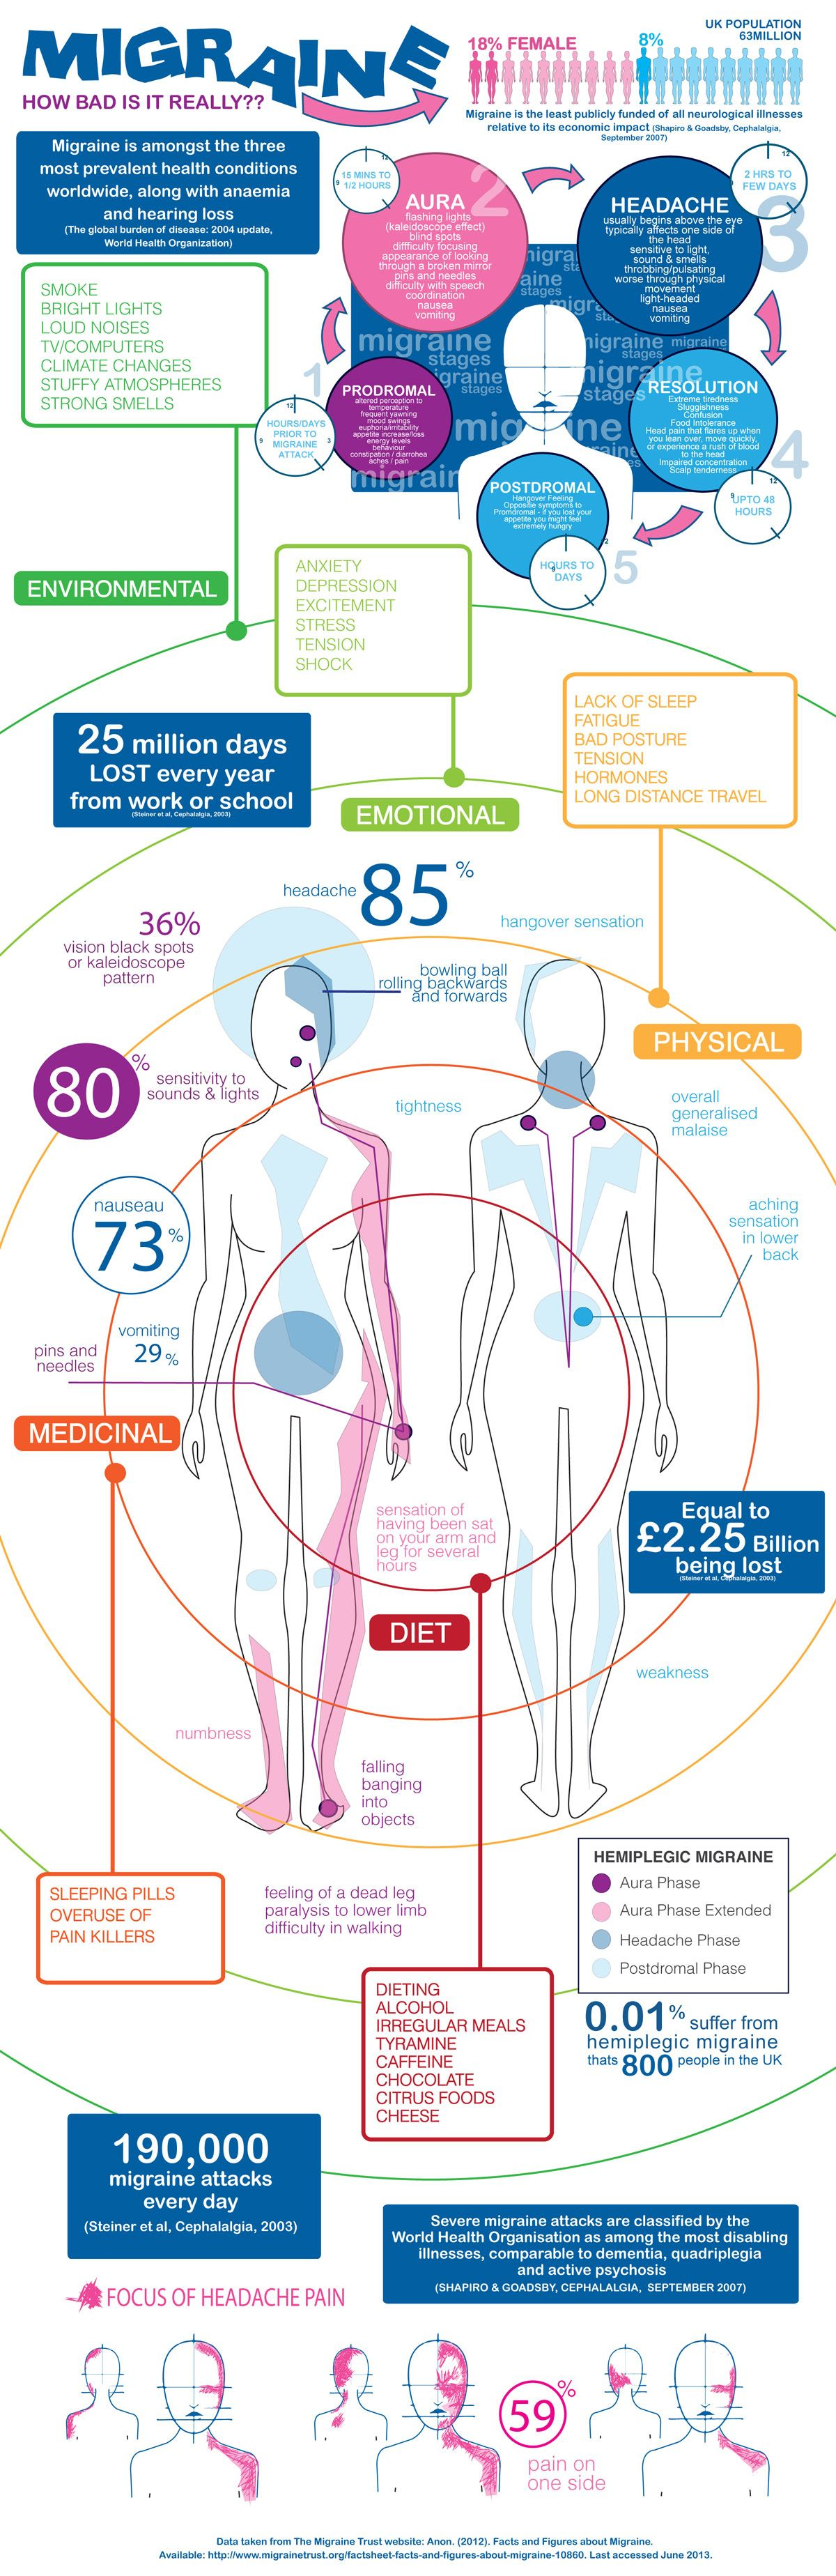 Migraine Infographic - How bad is it really? (Terribly bad!)